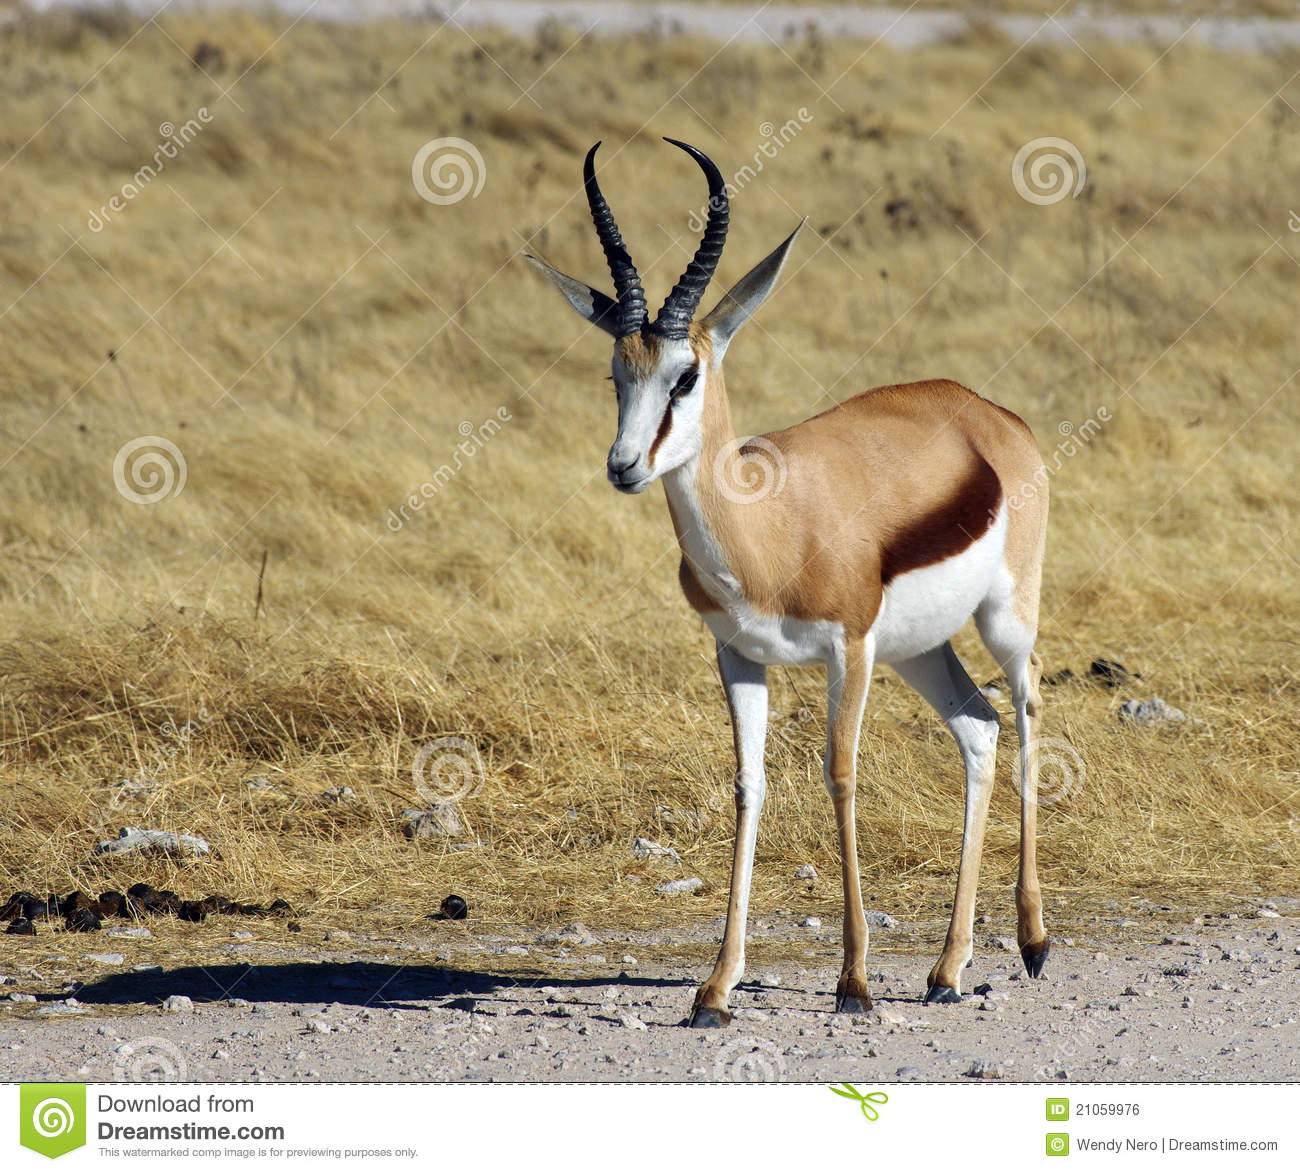 clipart springbok - photo #32